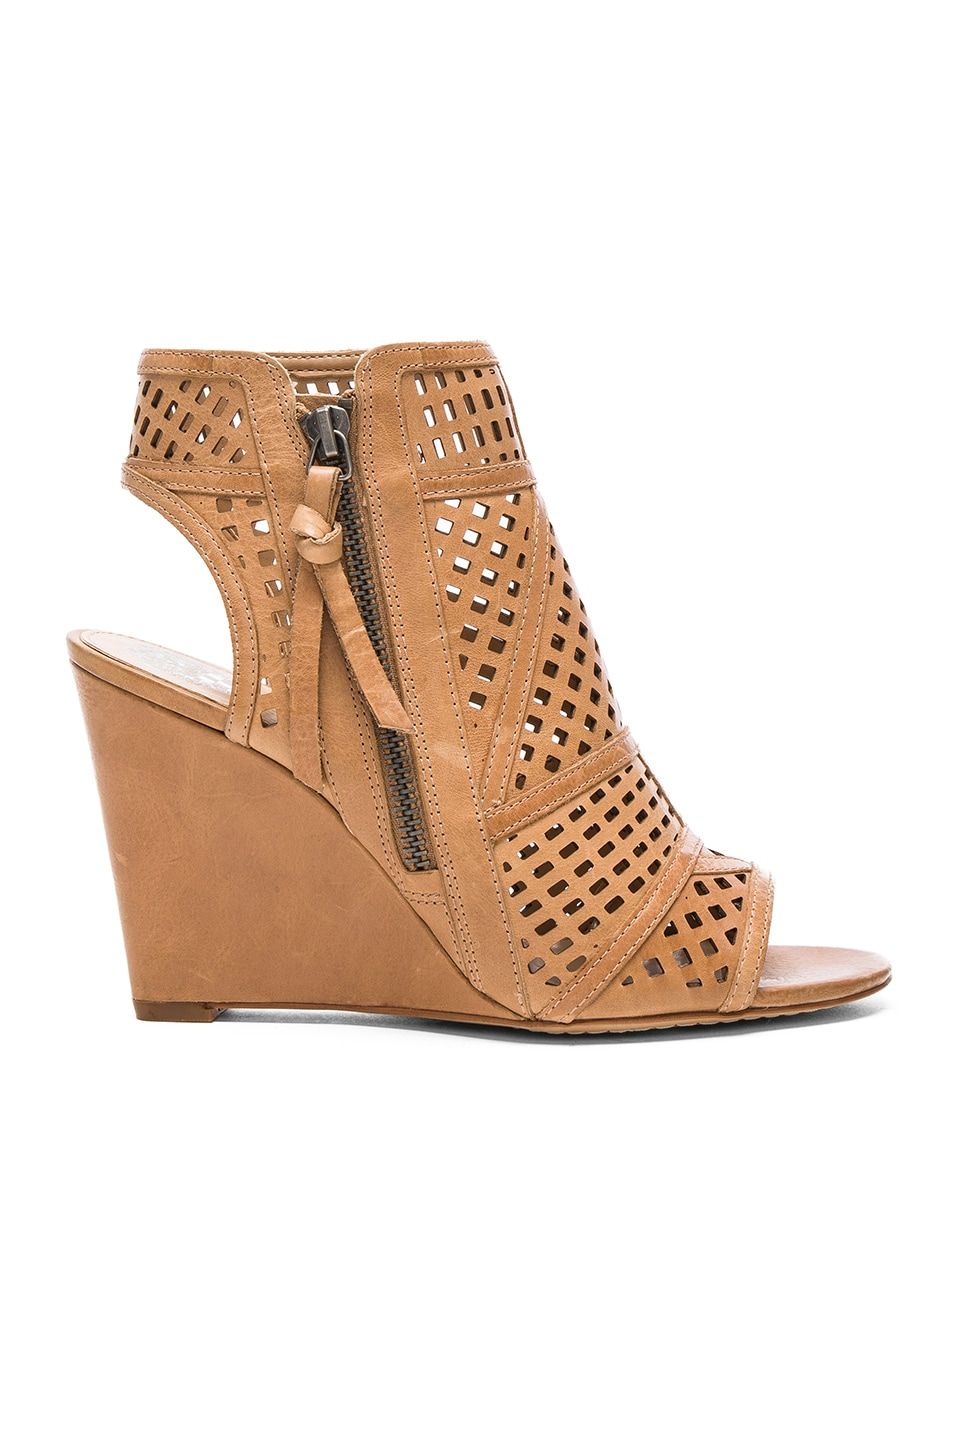 Xabrina Wedge by Vince Camuto